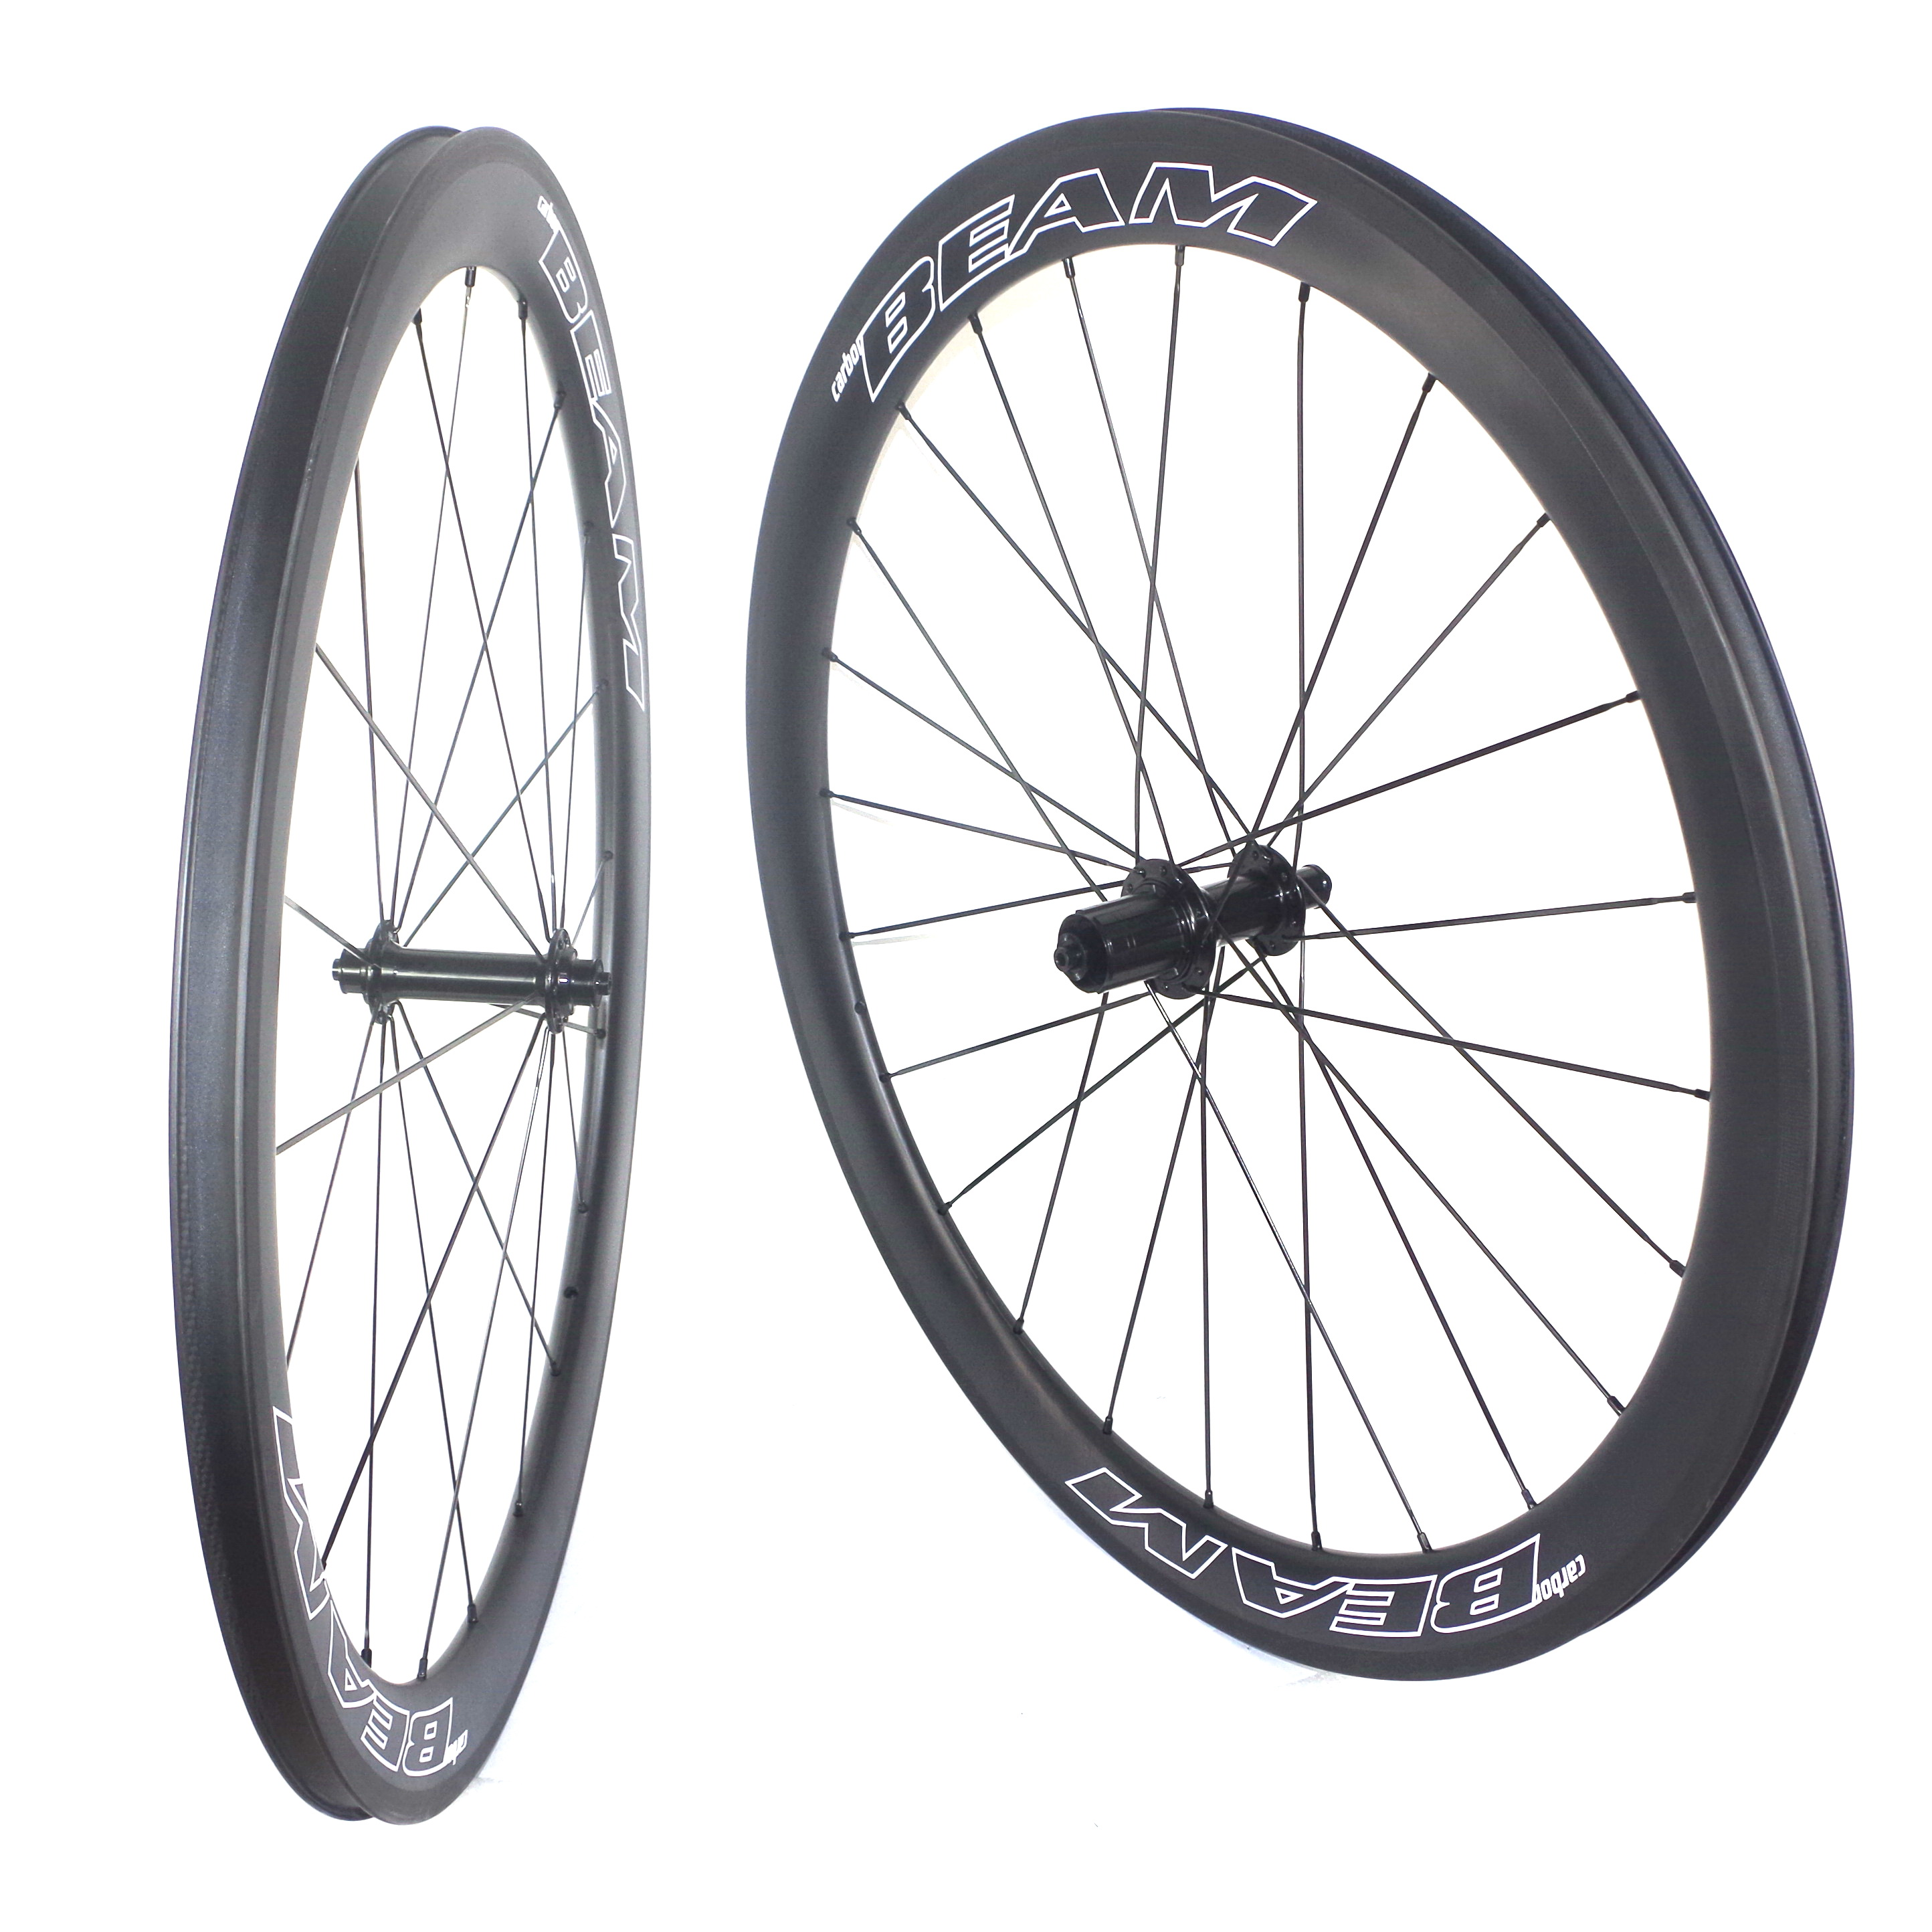 Carbonbeam large 23mm carbone roues 30mm 38mm 45mm 50mm 60mm 88mm carbone roues de vélo 700C route vélo carbone roues